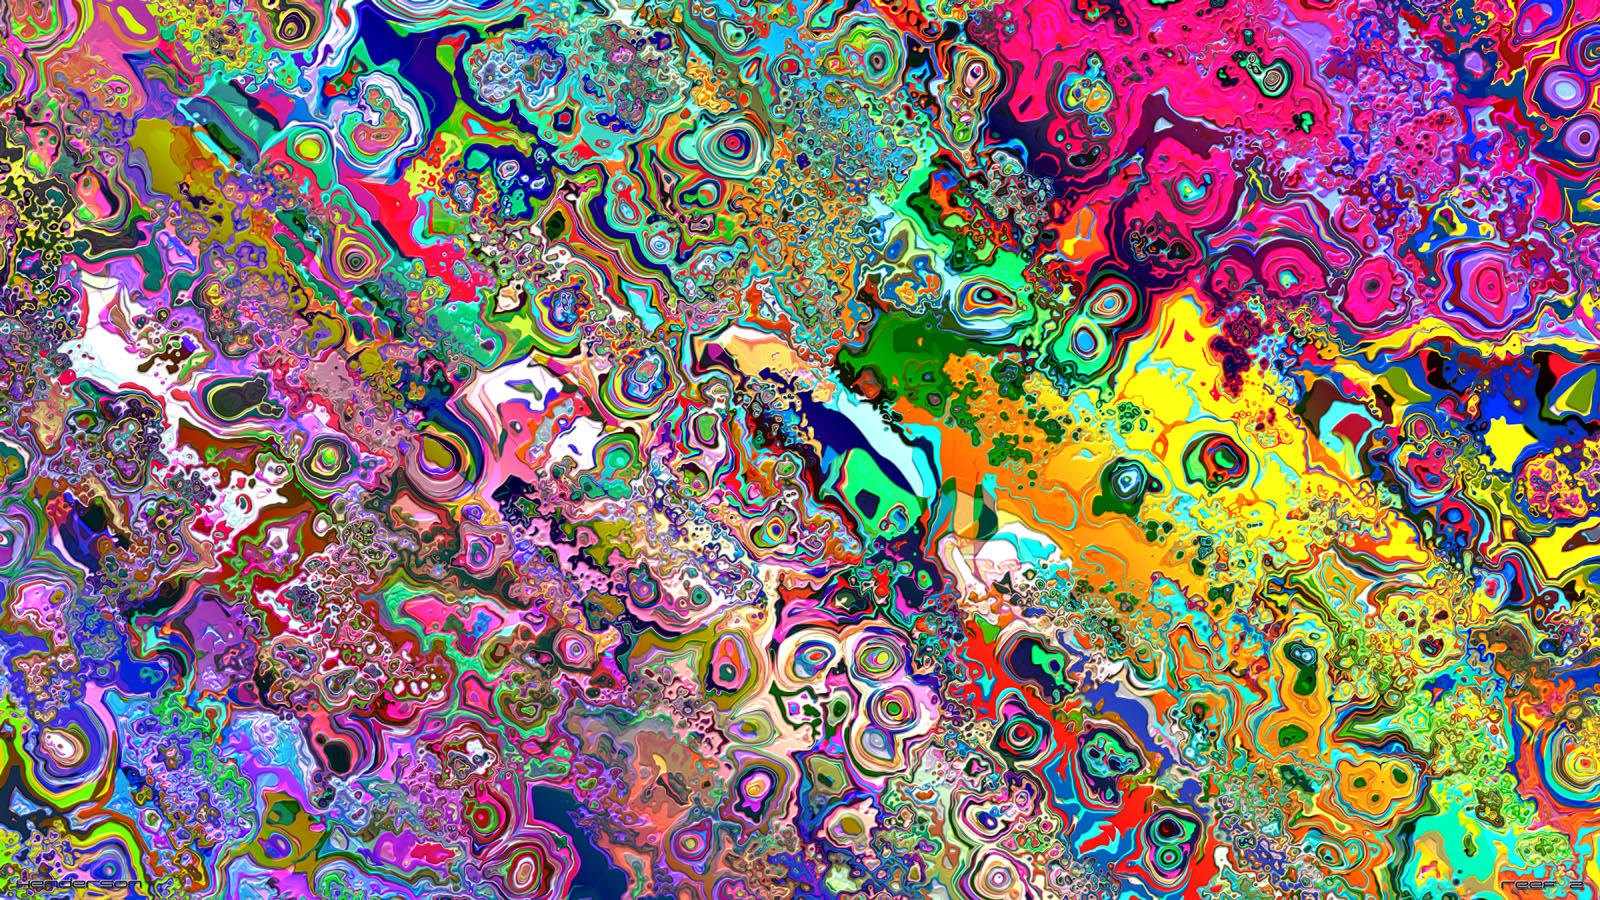 Psychedelic Computer Wallpapers Desktop Backgrounds 1600x900 ID 1600x900